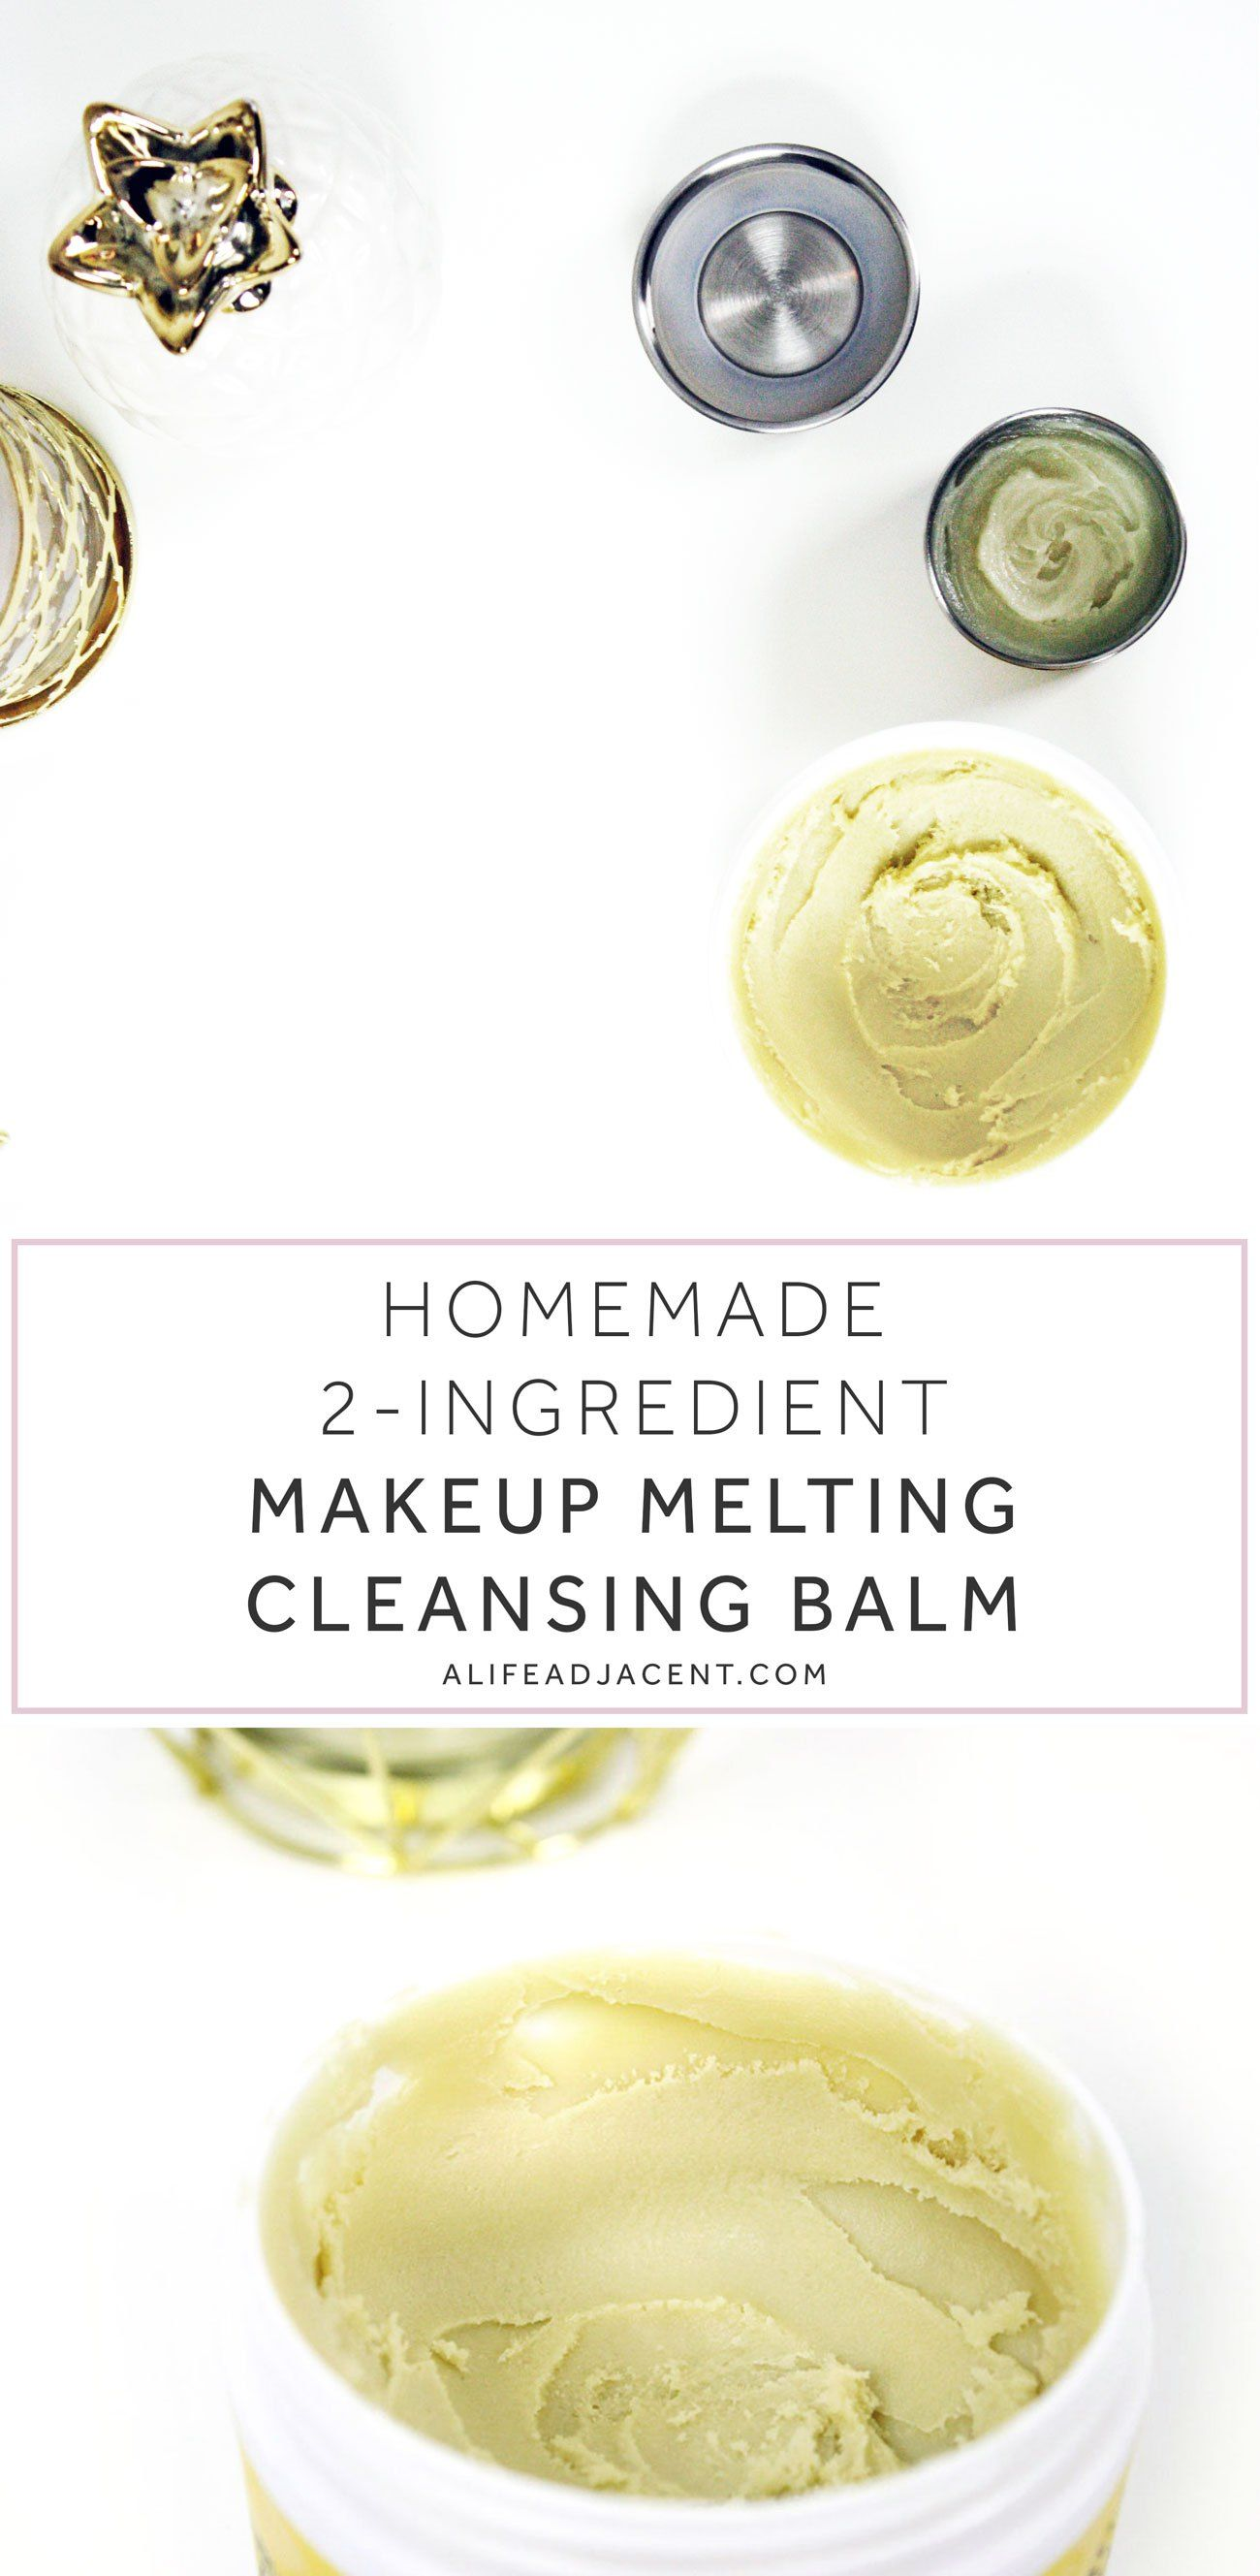 DIY Cleansing Balm to Melt Your Makeup Skin care